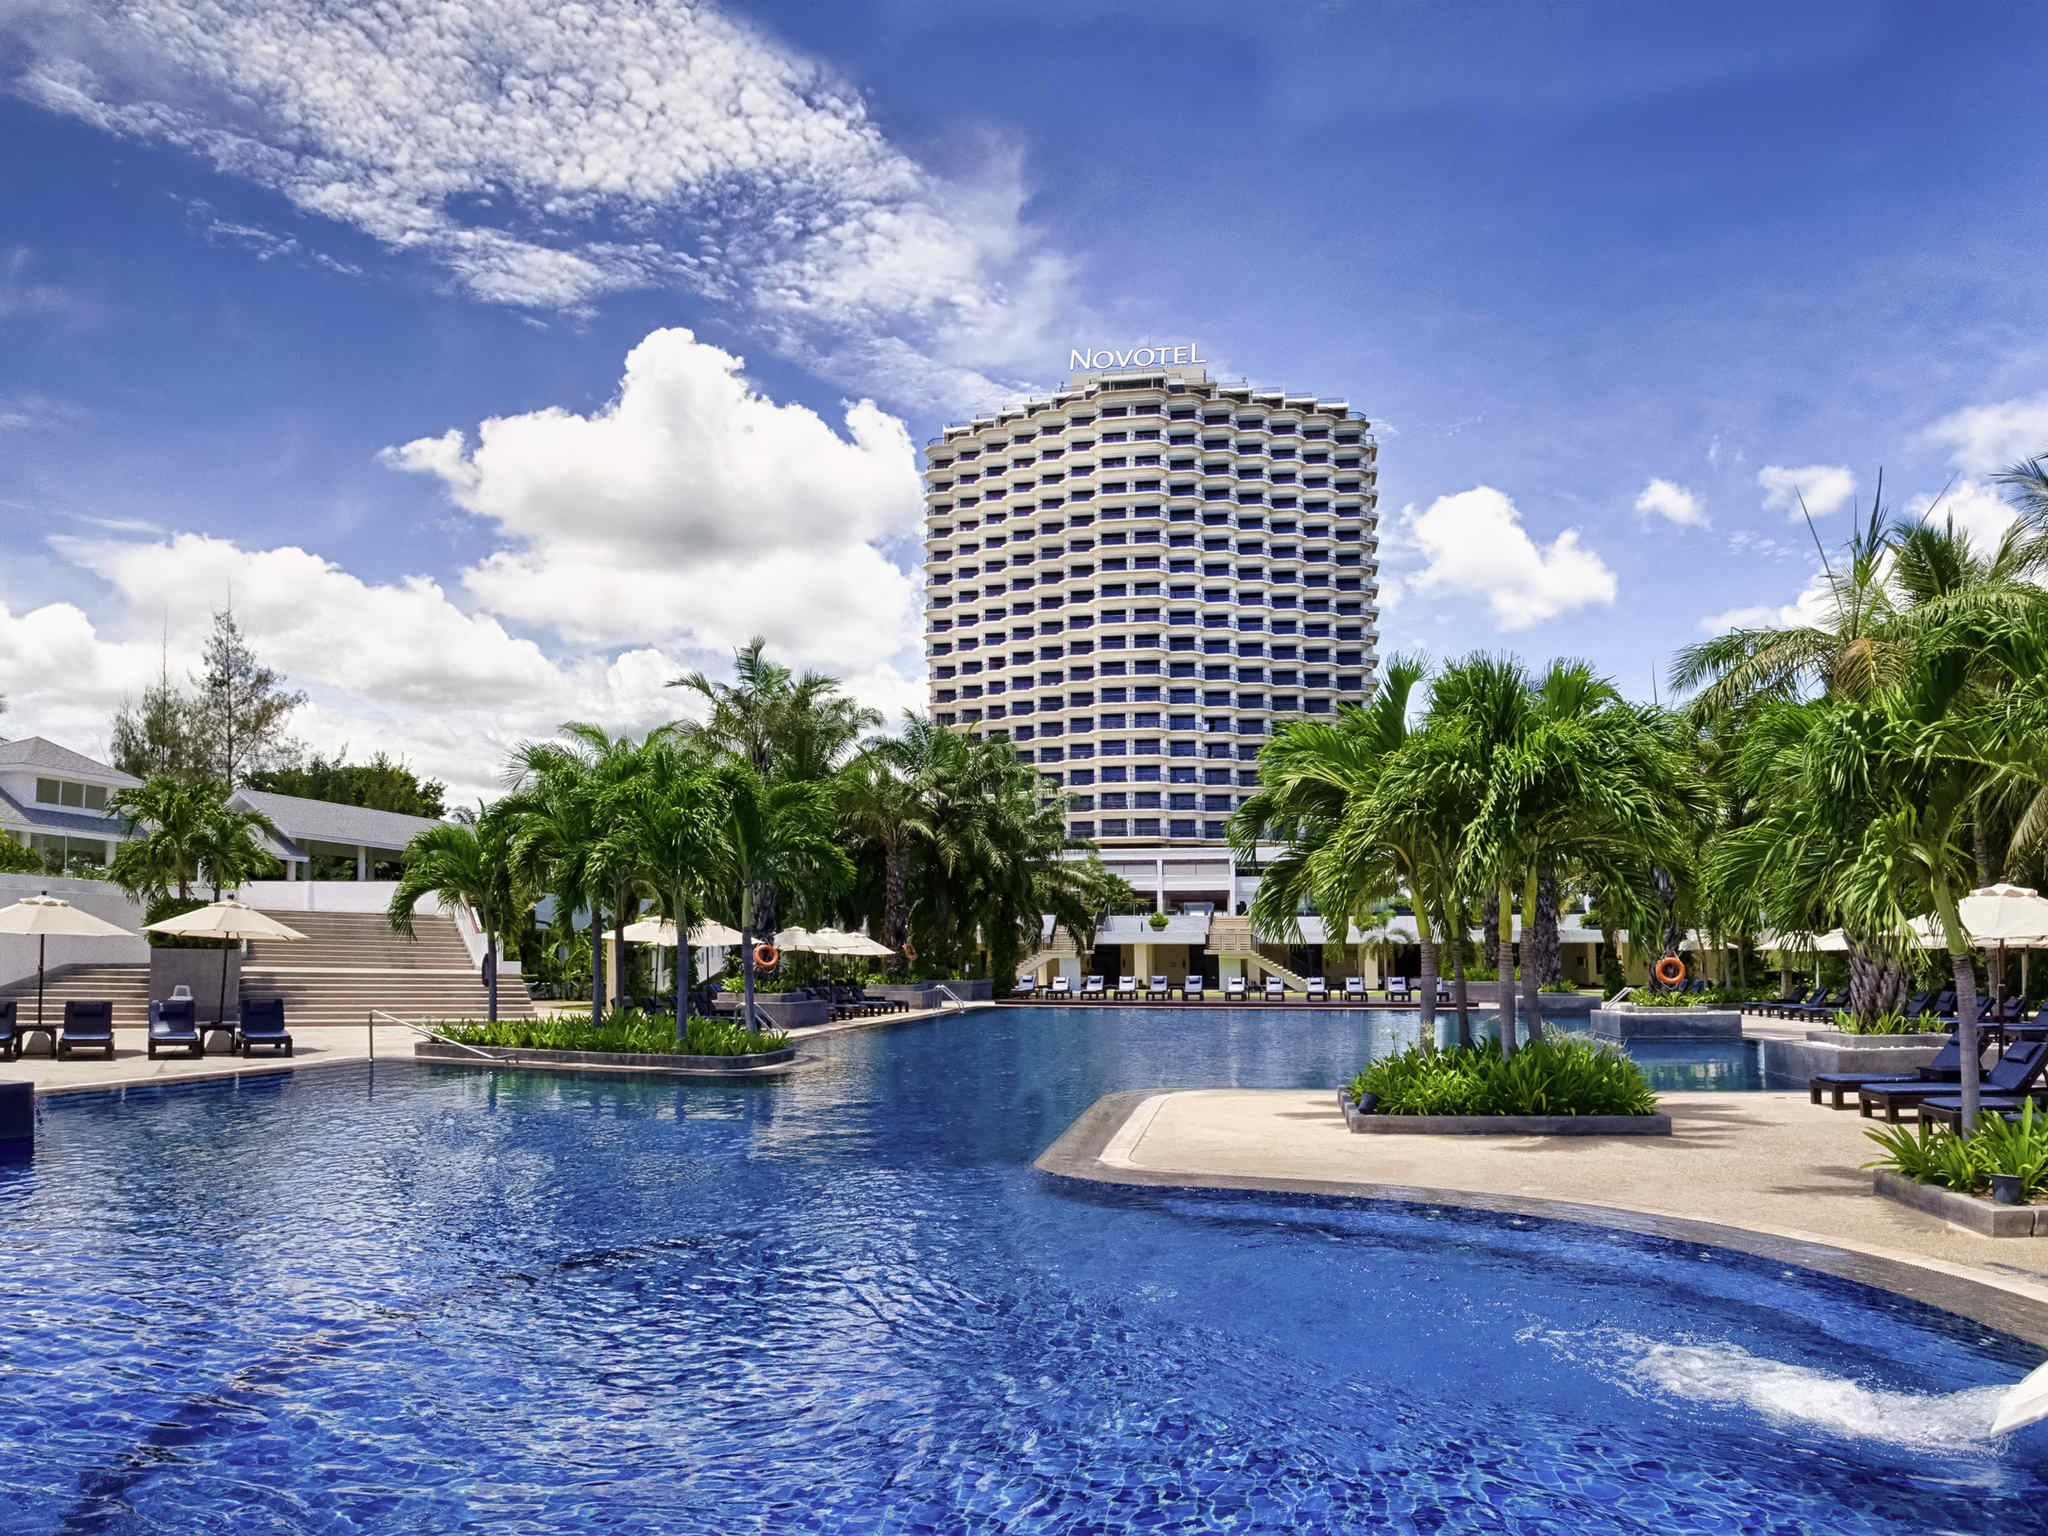 Hotel Novotel Hua Hin Cha Am Beach Resort